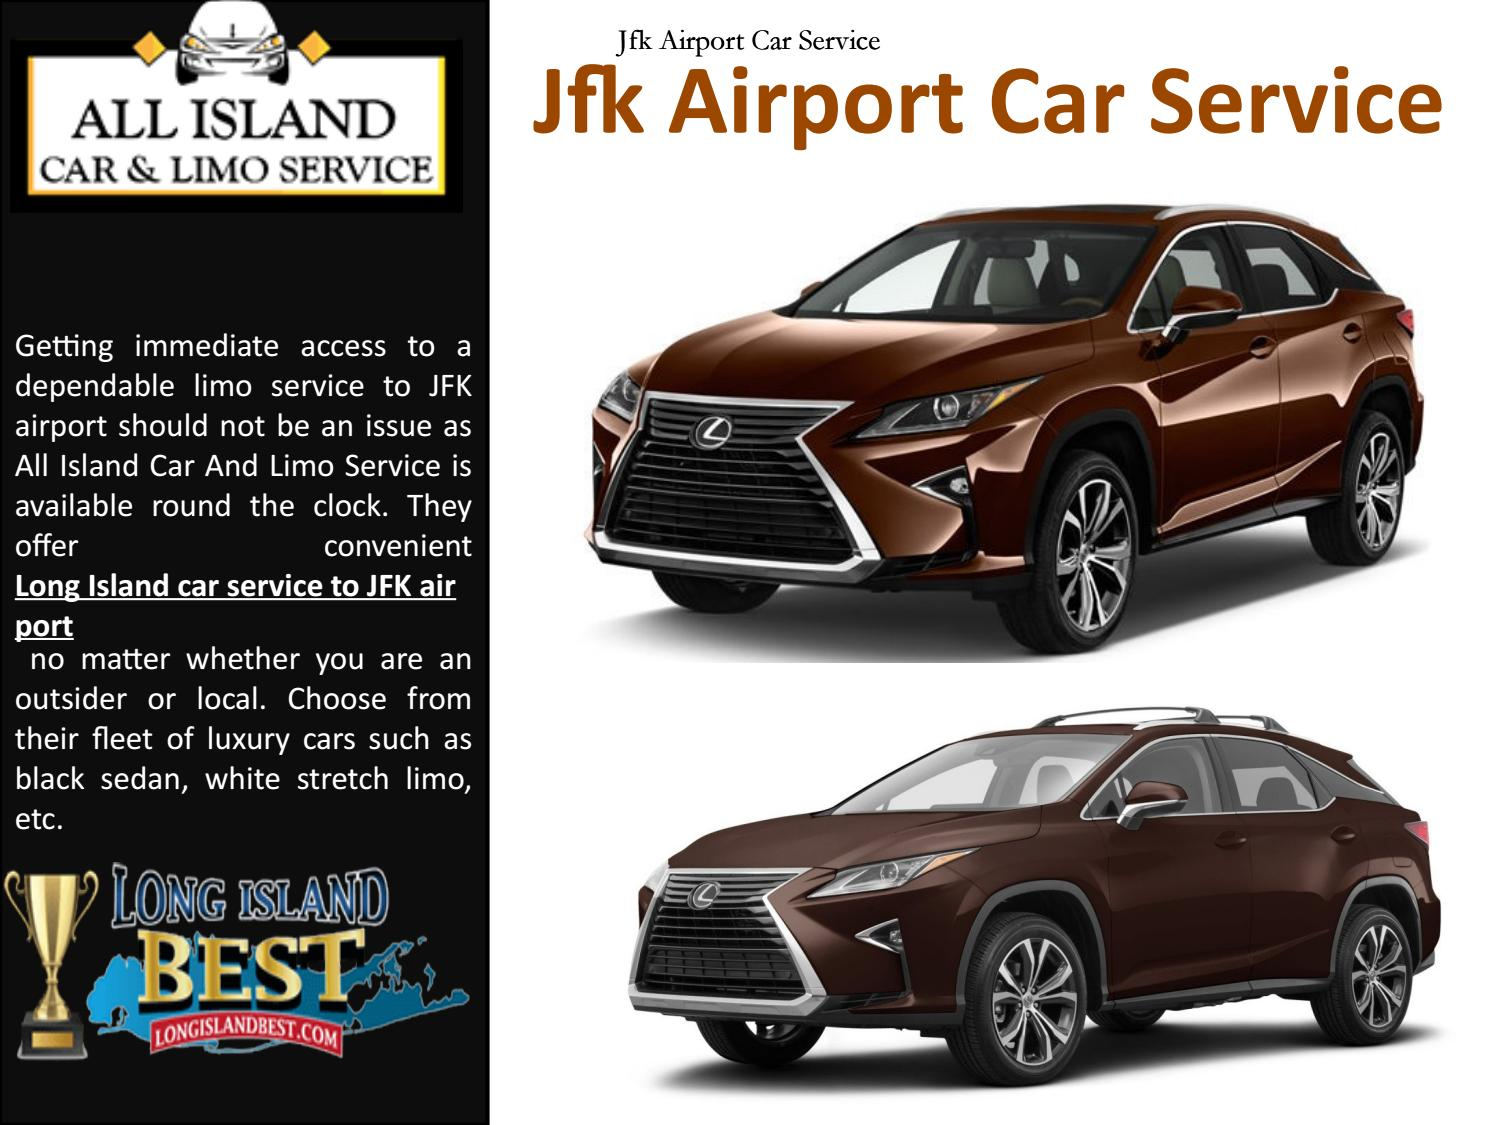 Jfk Airport Car Service By All Island Car Limo Service Issuu